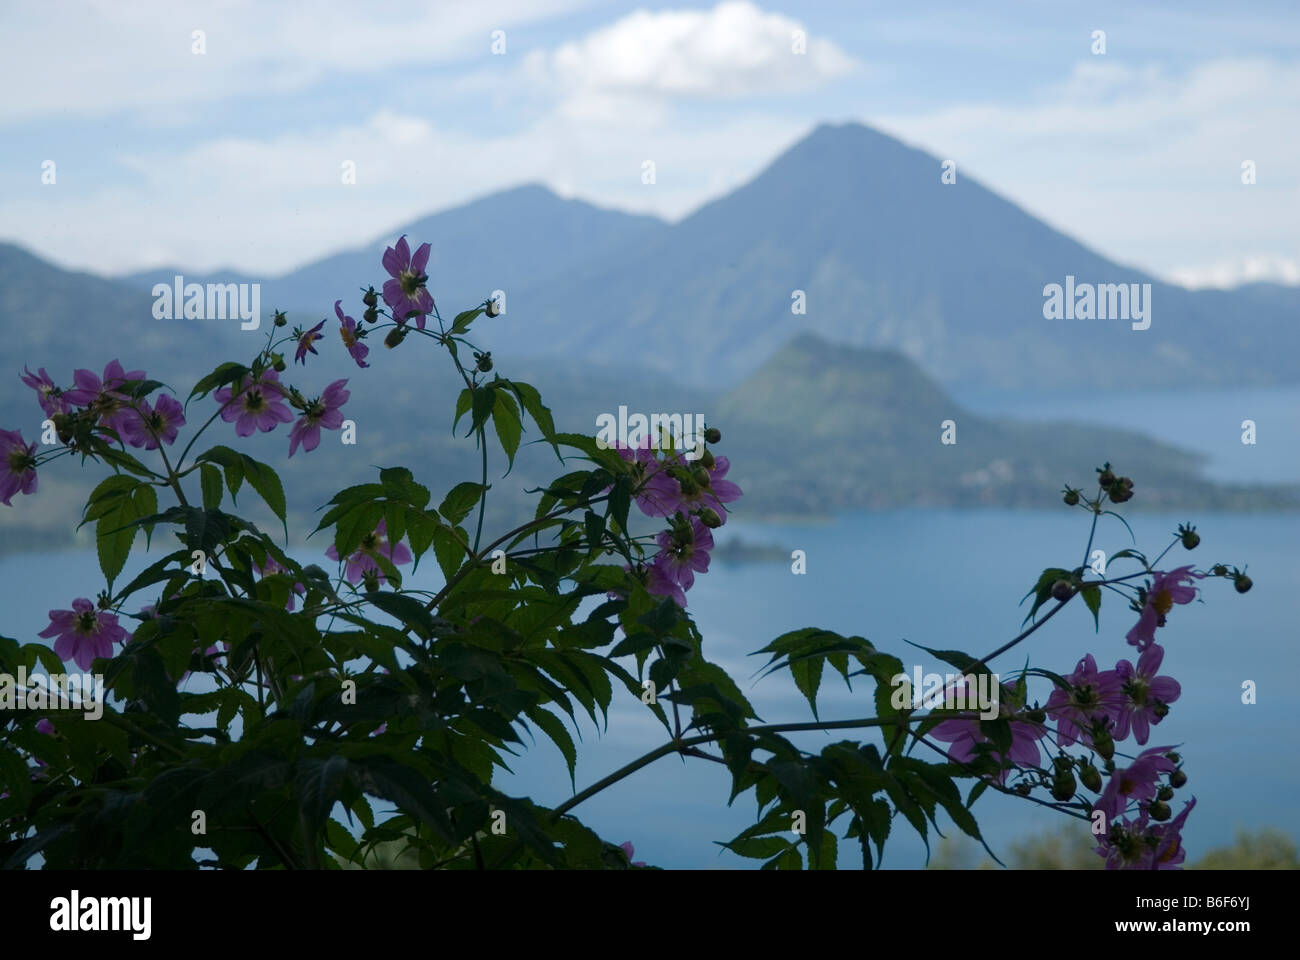 View through flowering plants on Lago de Atitlan with Volcan San Pedro (3020m) in the distance - Stock Image